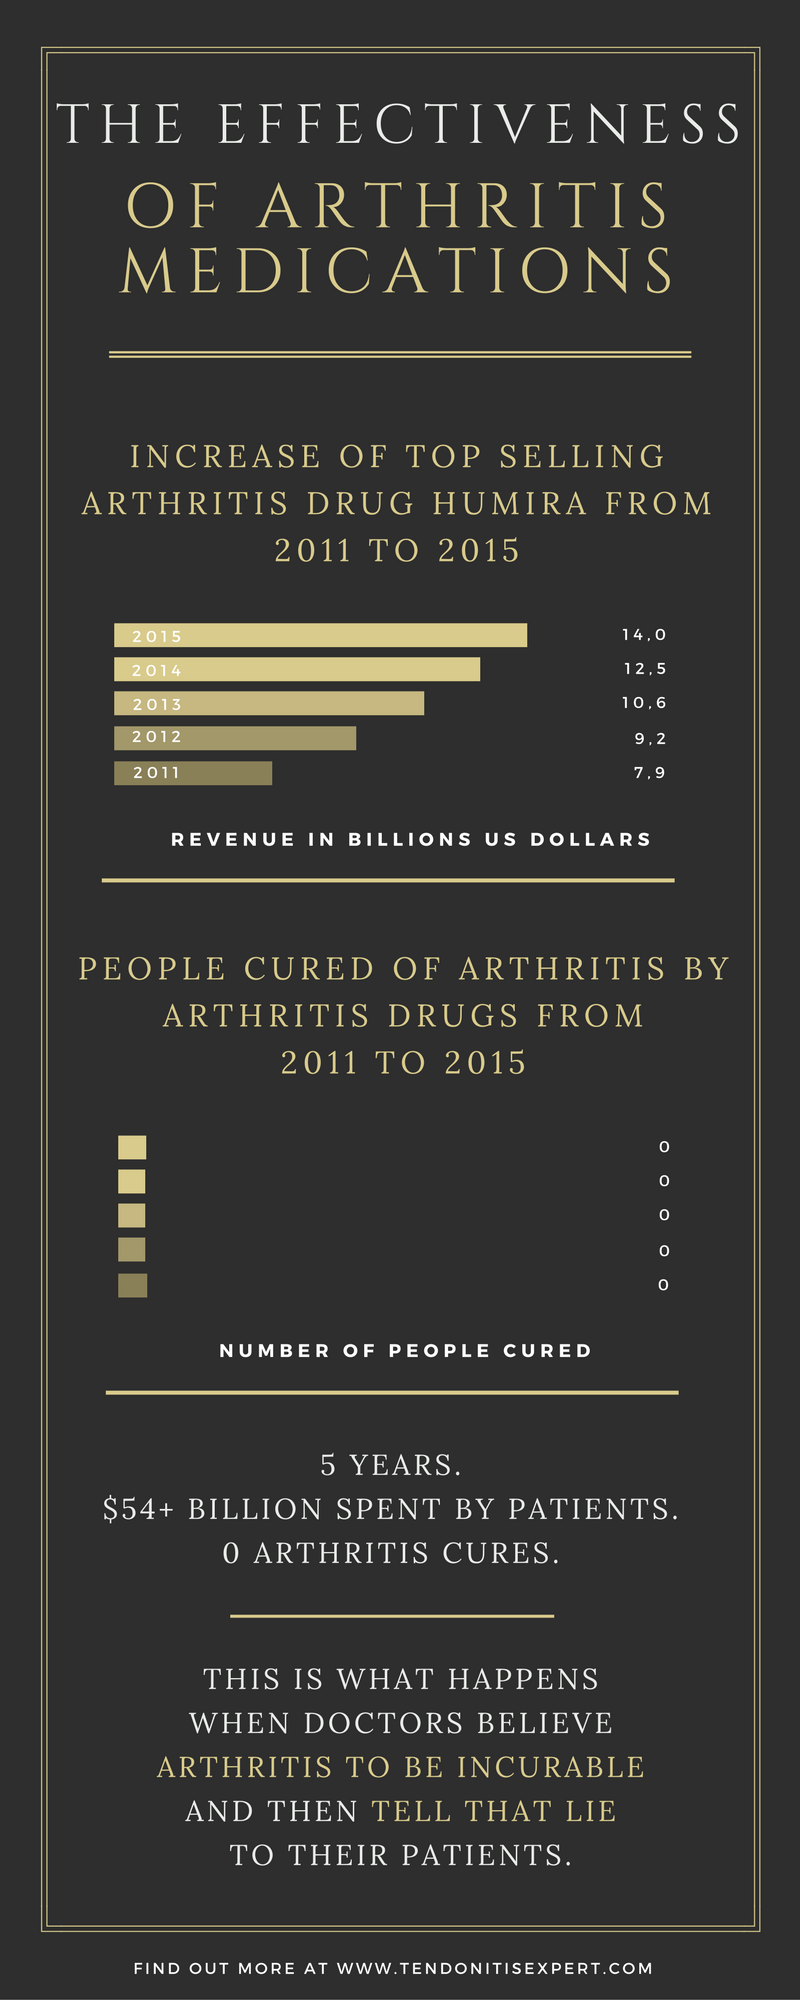 Arthritis is something that can be prevented, and reversed.  It's not the mystery that doctors think it is.  www.TendonitisExpert.com/what-is-arthritis.html